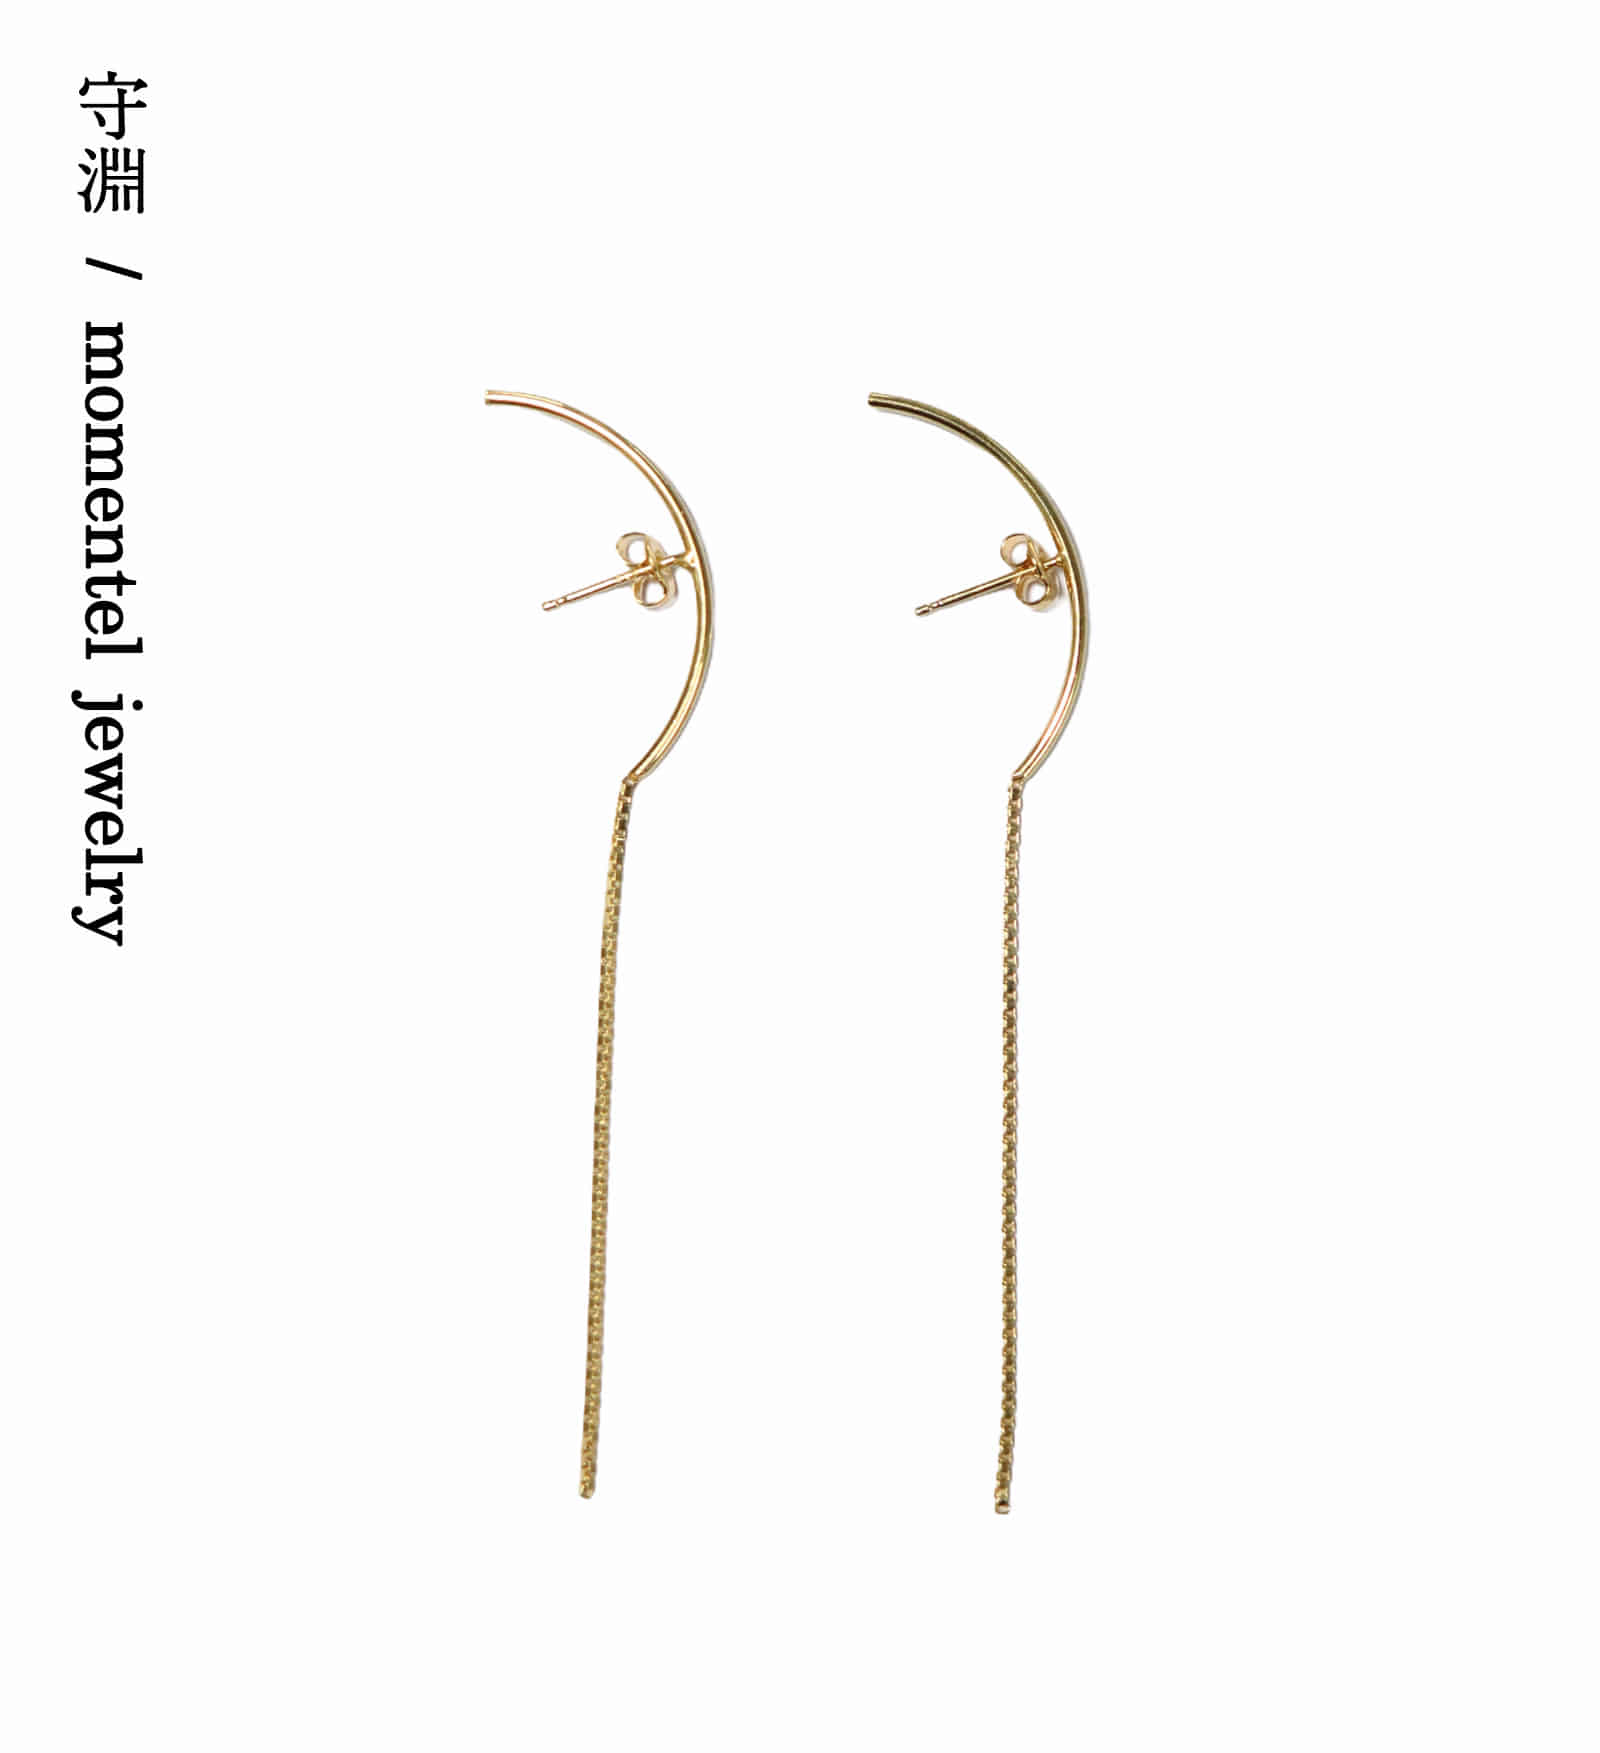 ear cuff  shape chain drop earring